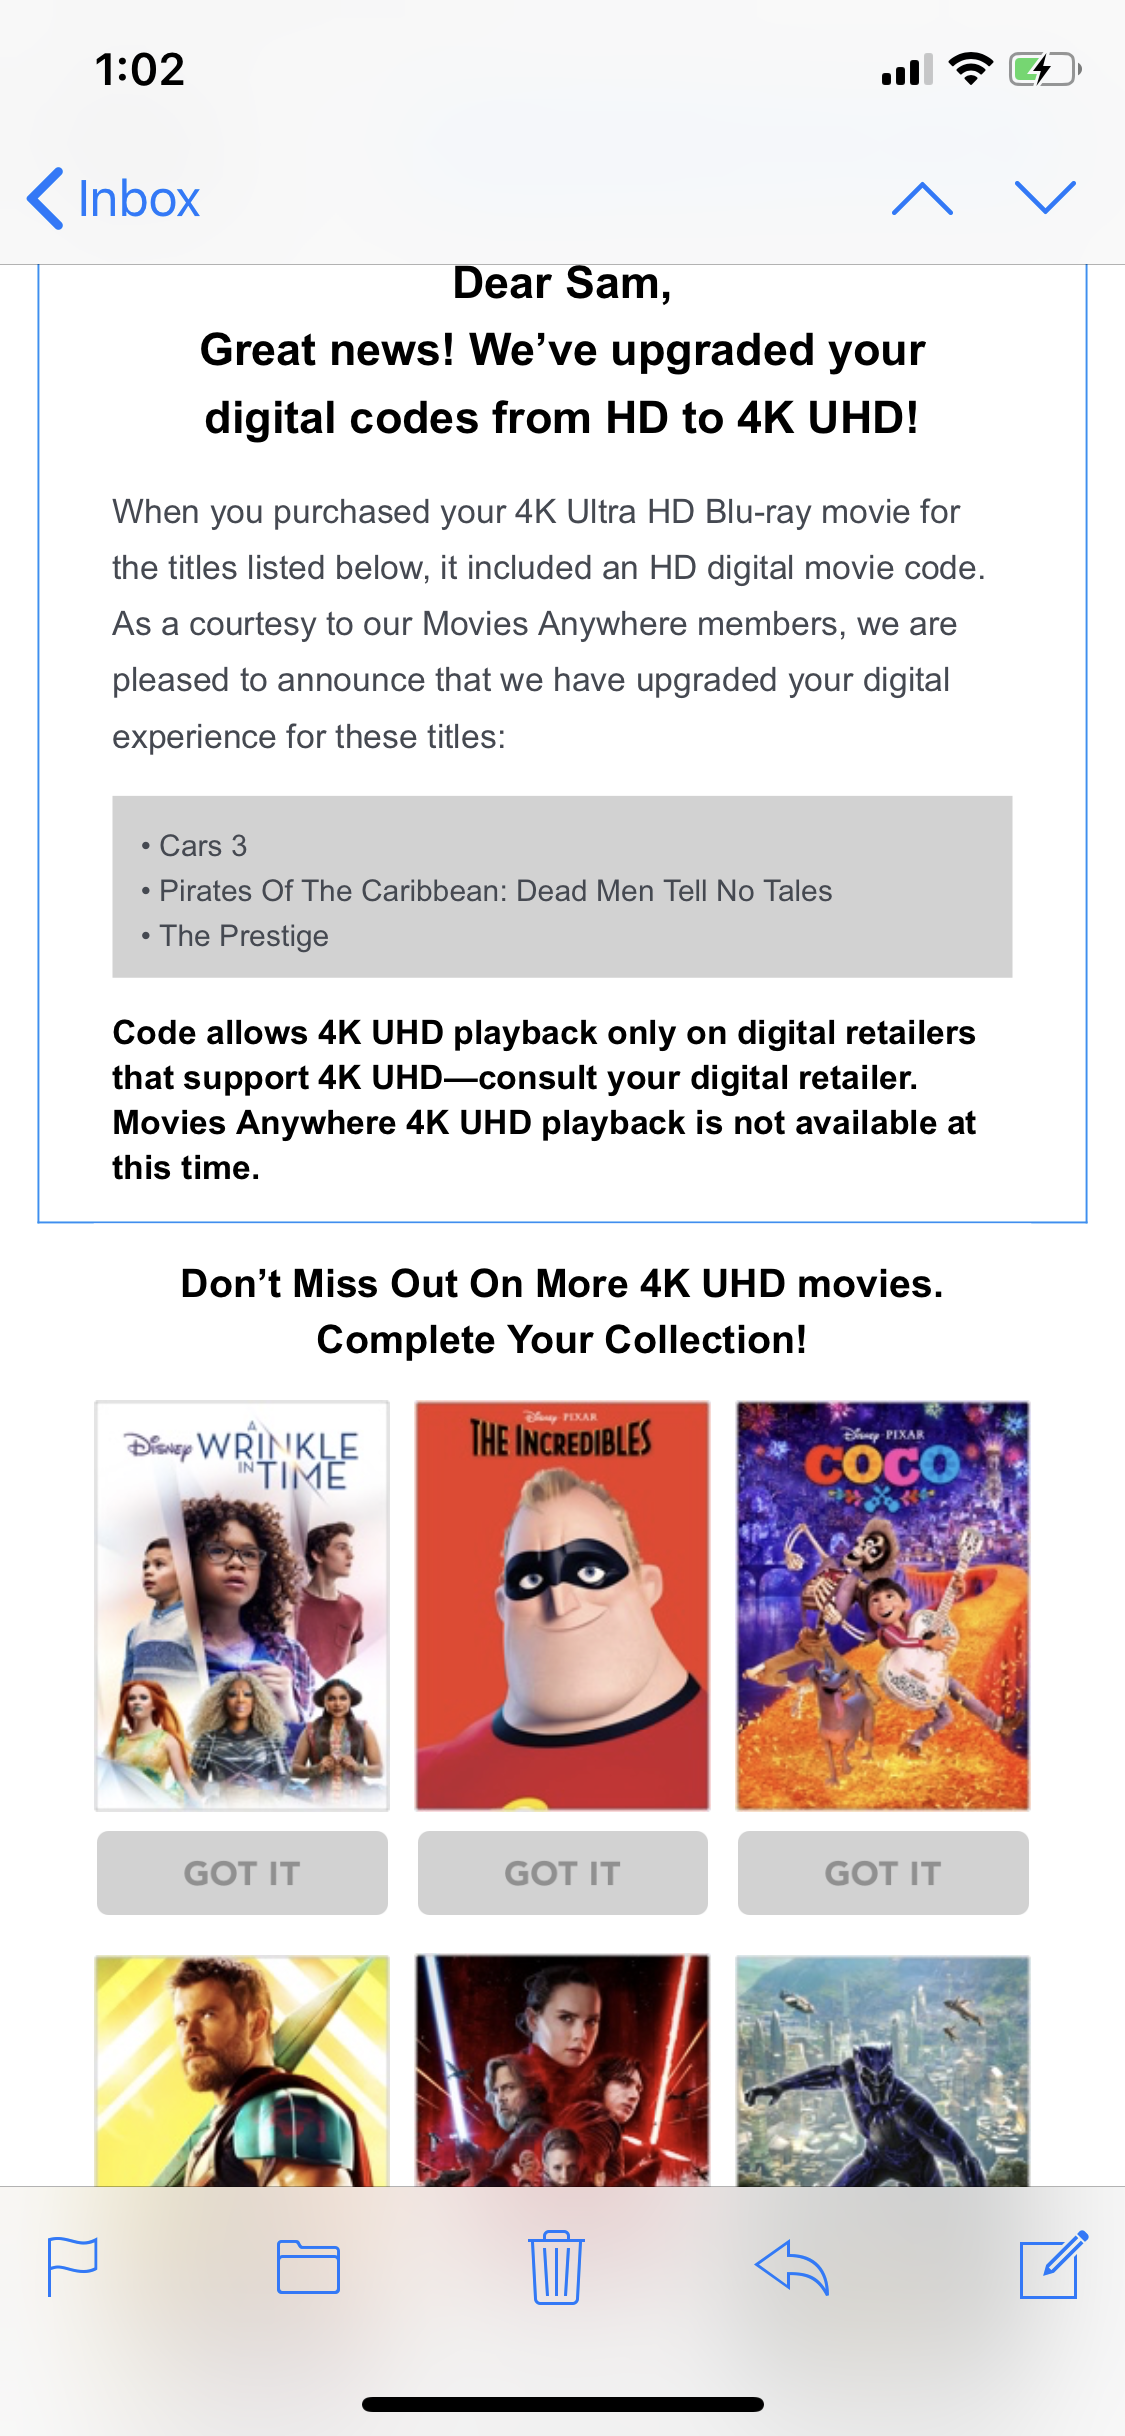 Press Release - Announcing the launch of MOVIES ANYWHERE